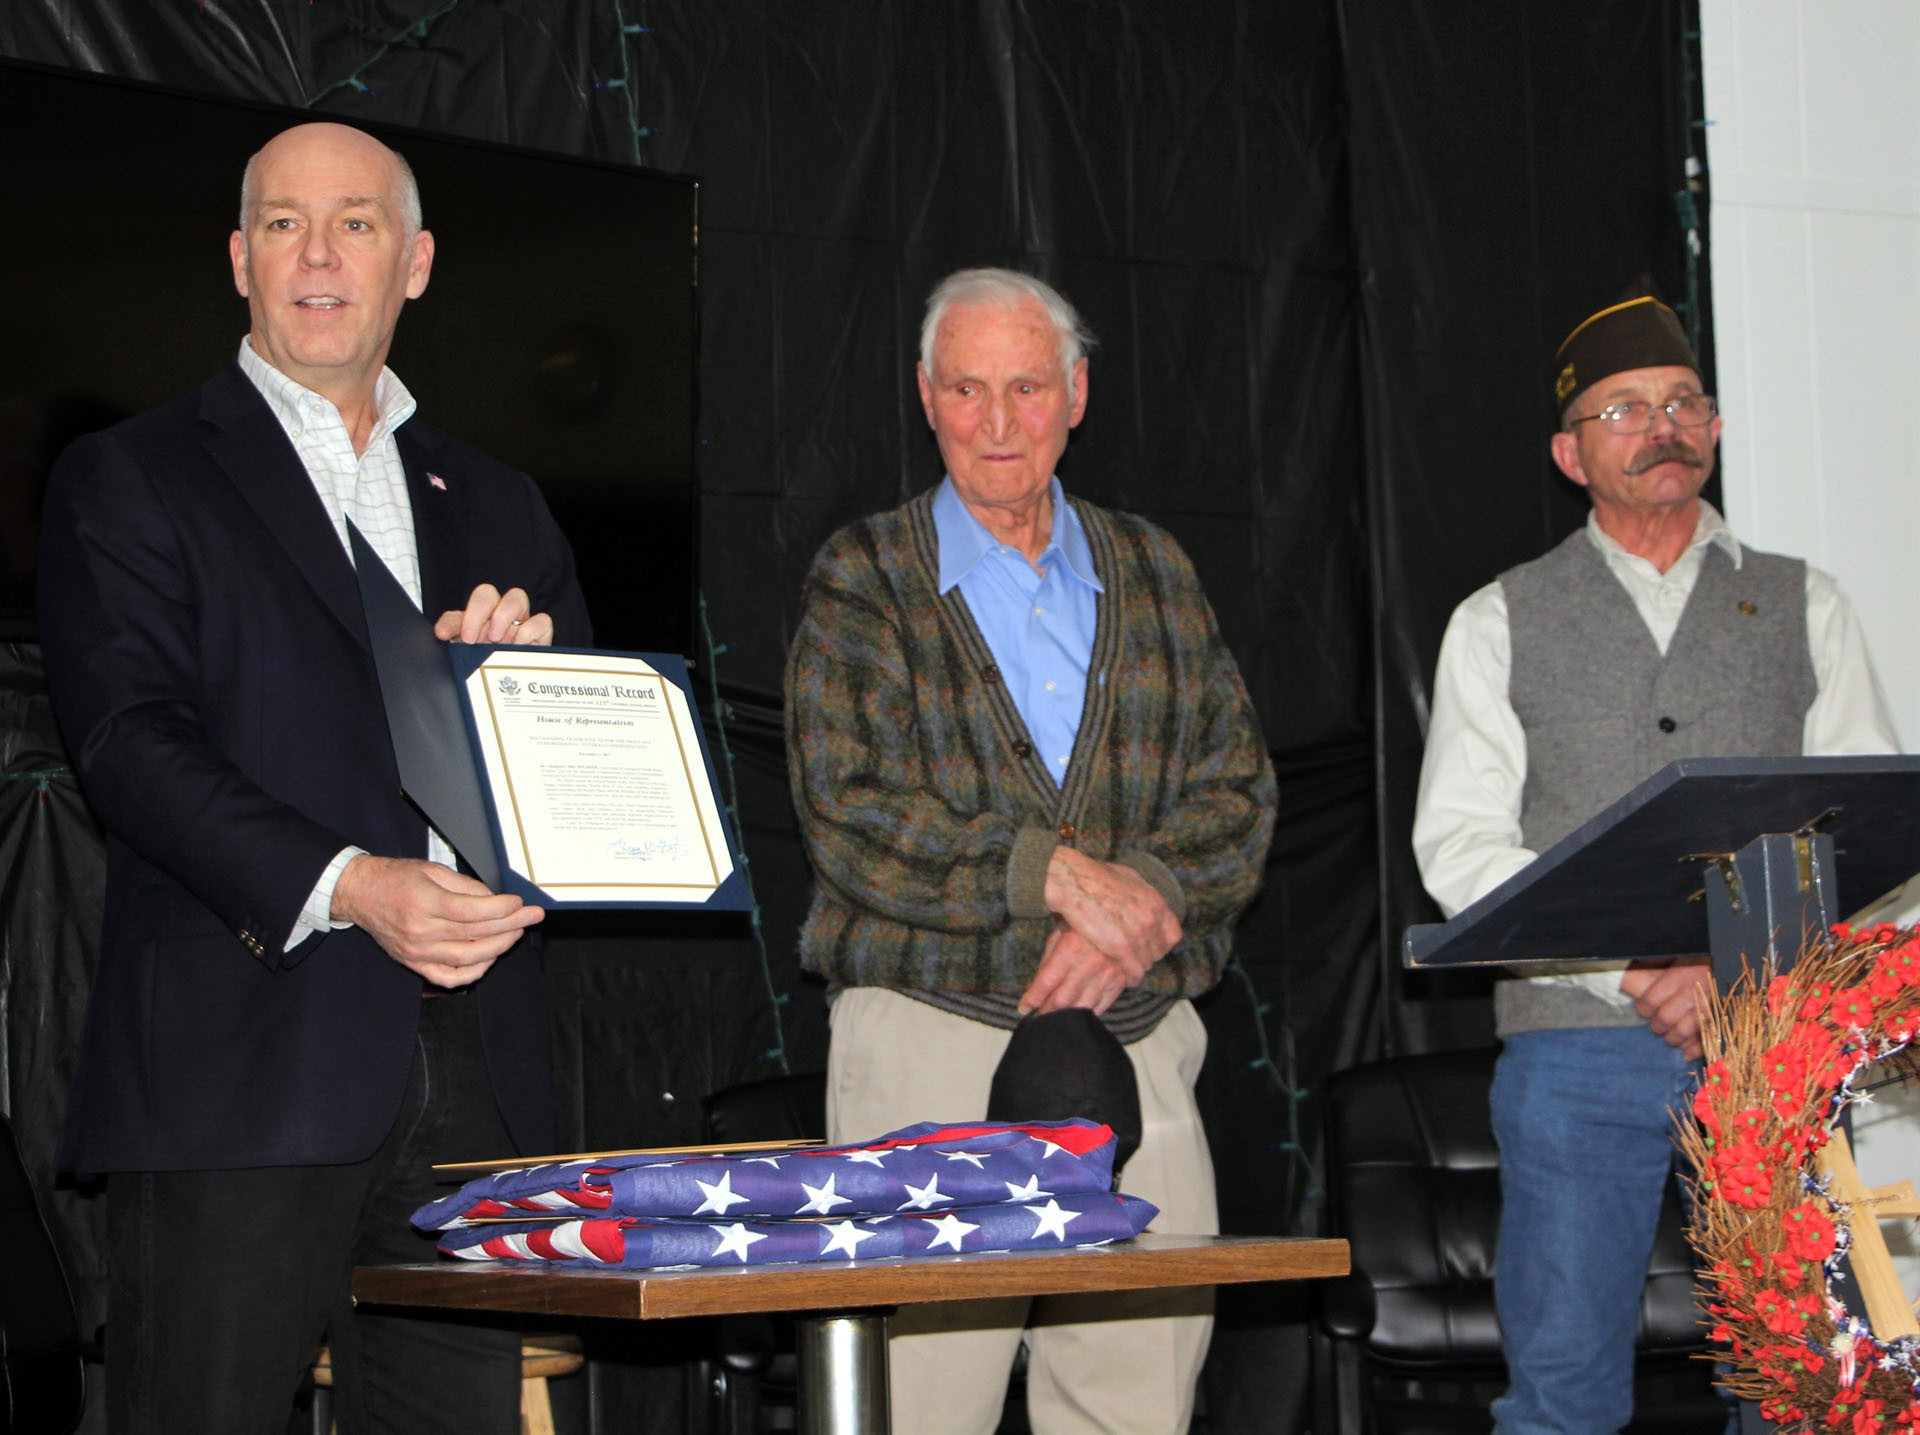 U.S. Congressman Greg Gianforte, Frank Stoltz, and Jack Bradley listen as Gianforte reads from the Congressional Record being awarded to Stoltz.STAR PHOTO/Sharon Moore